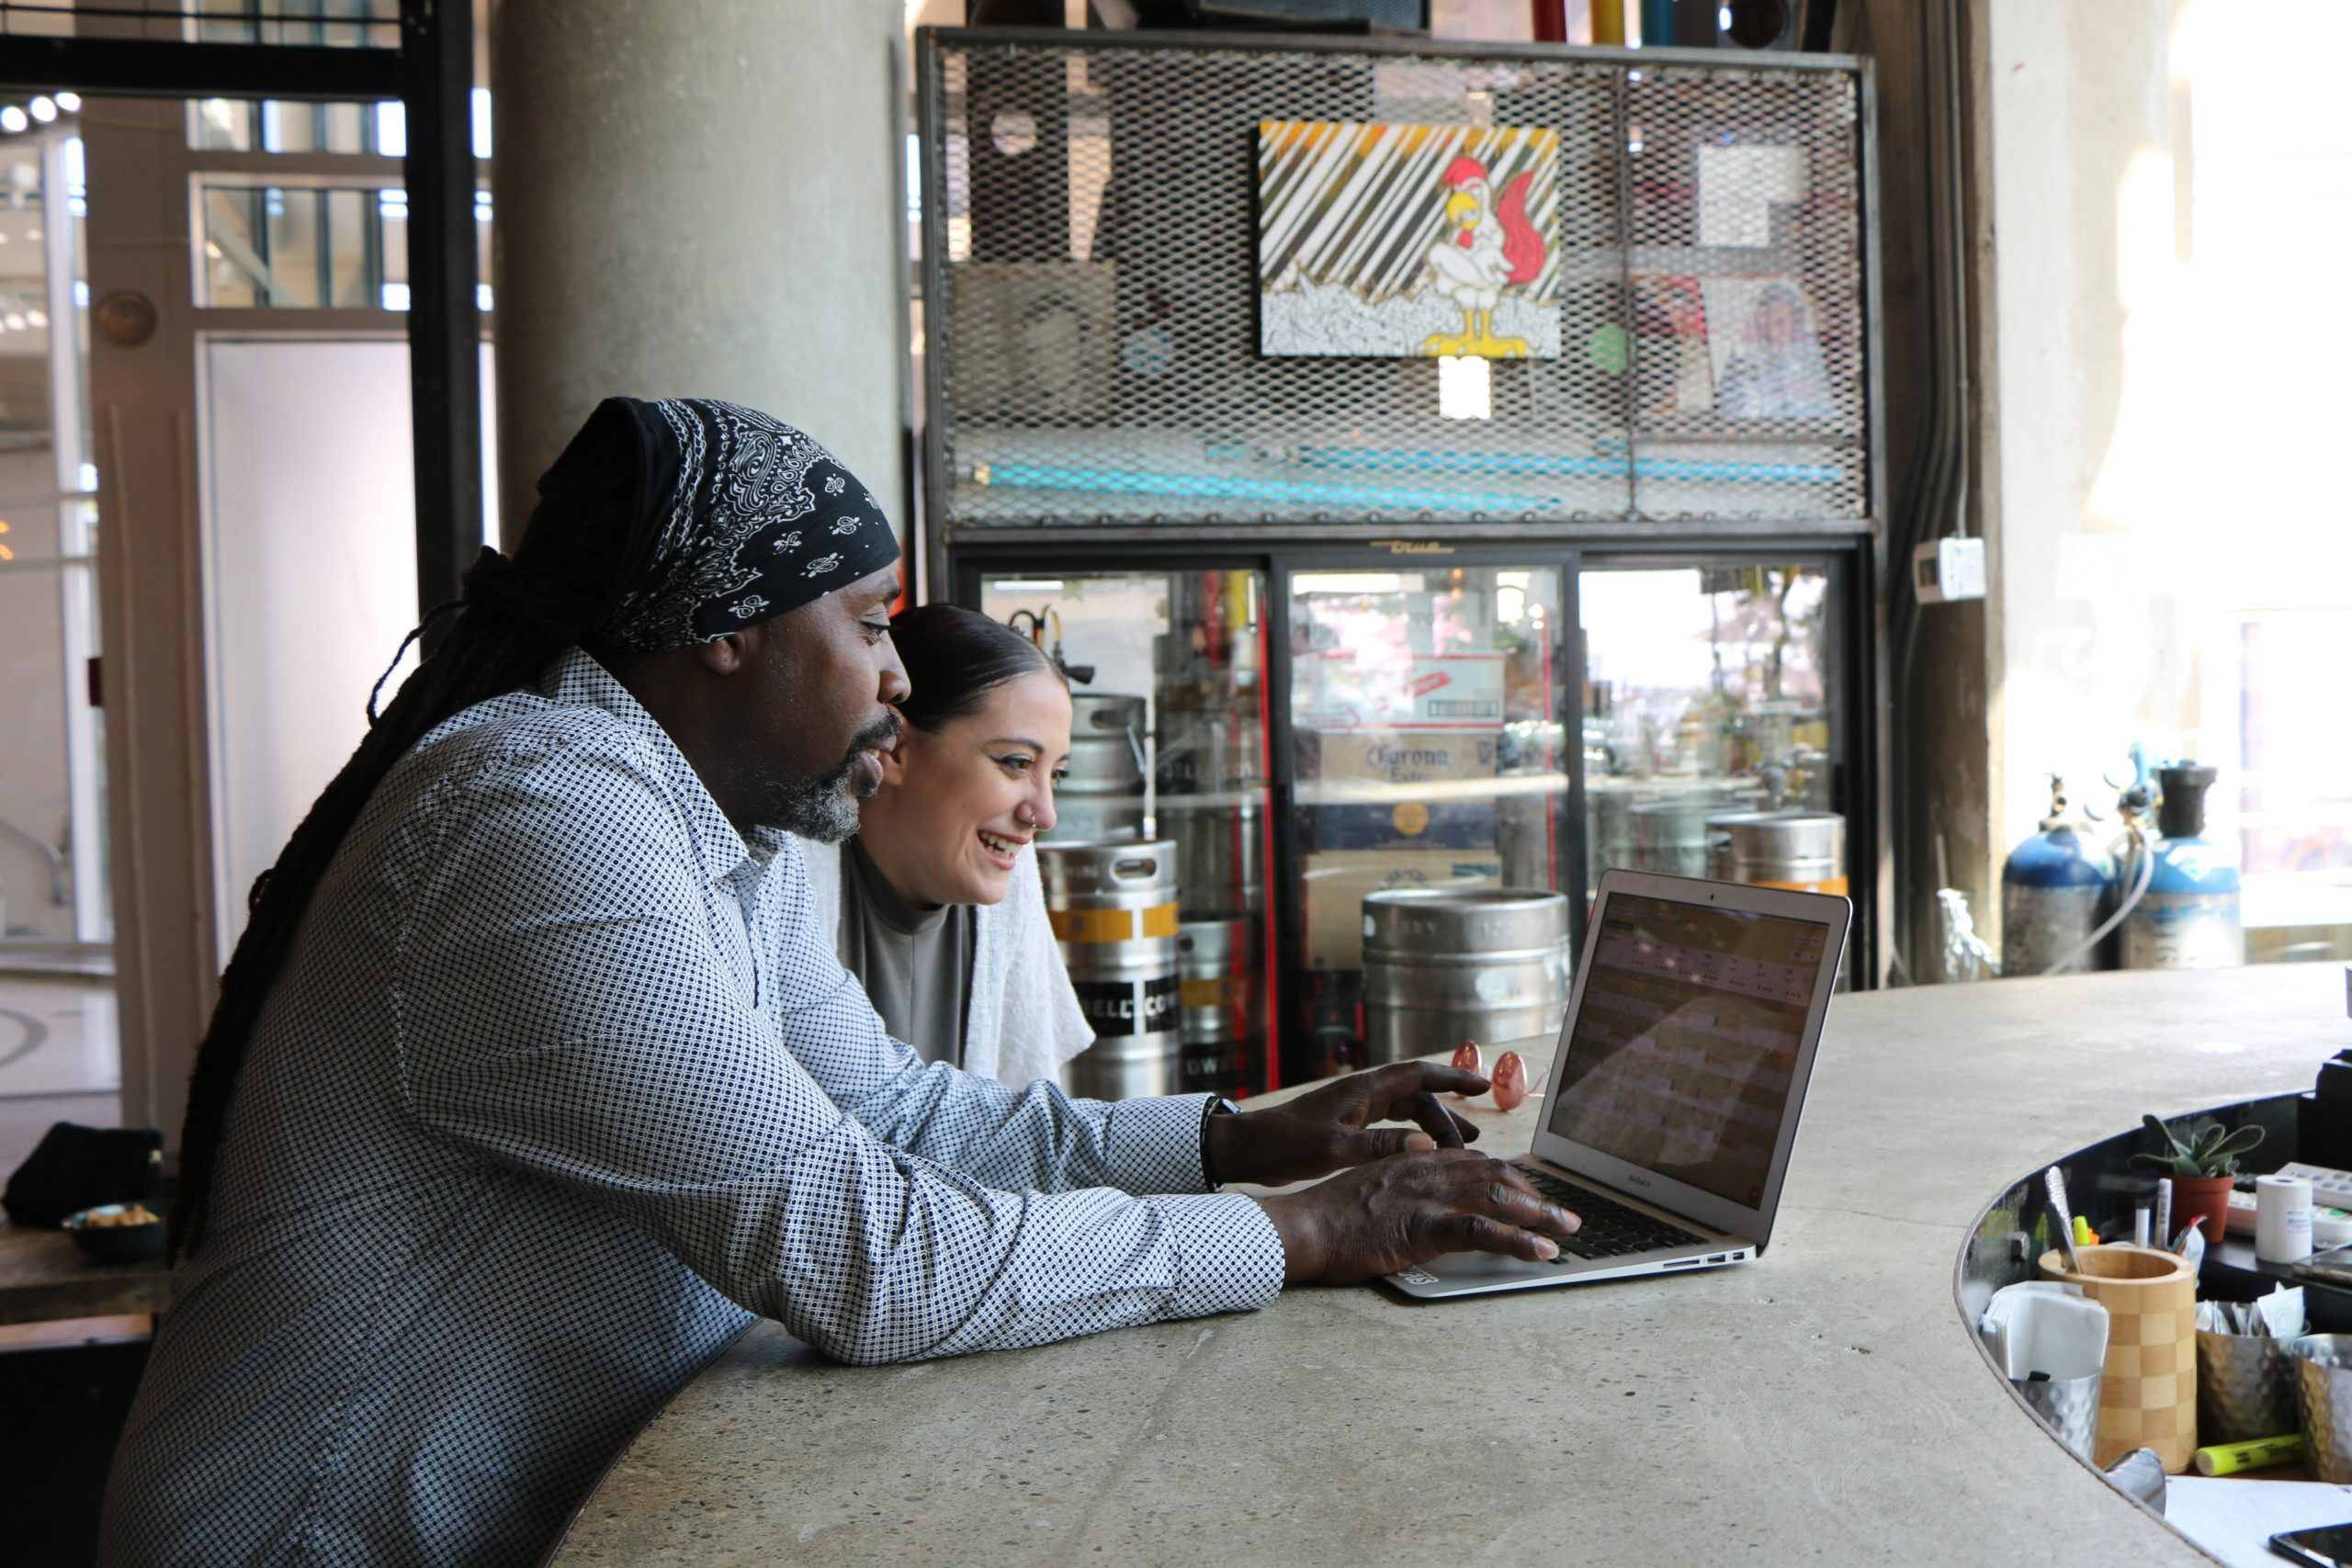 Man and woman on a laptop in a restaurant